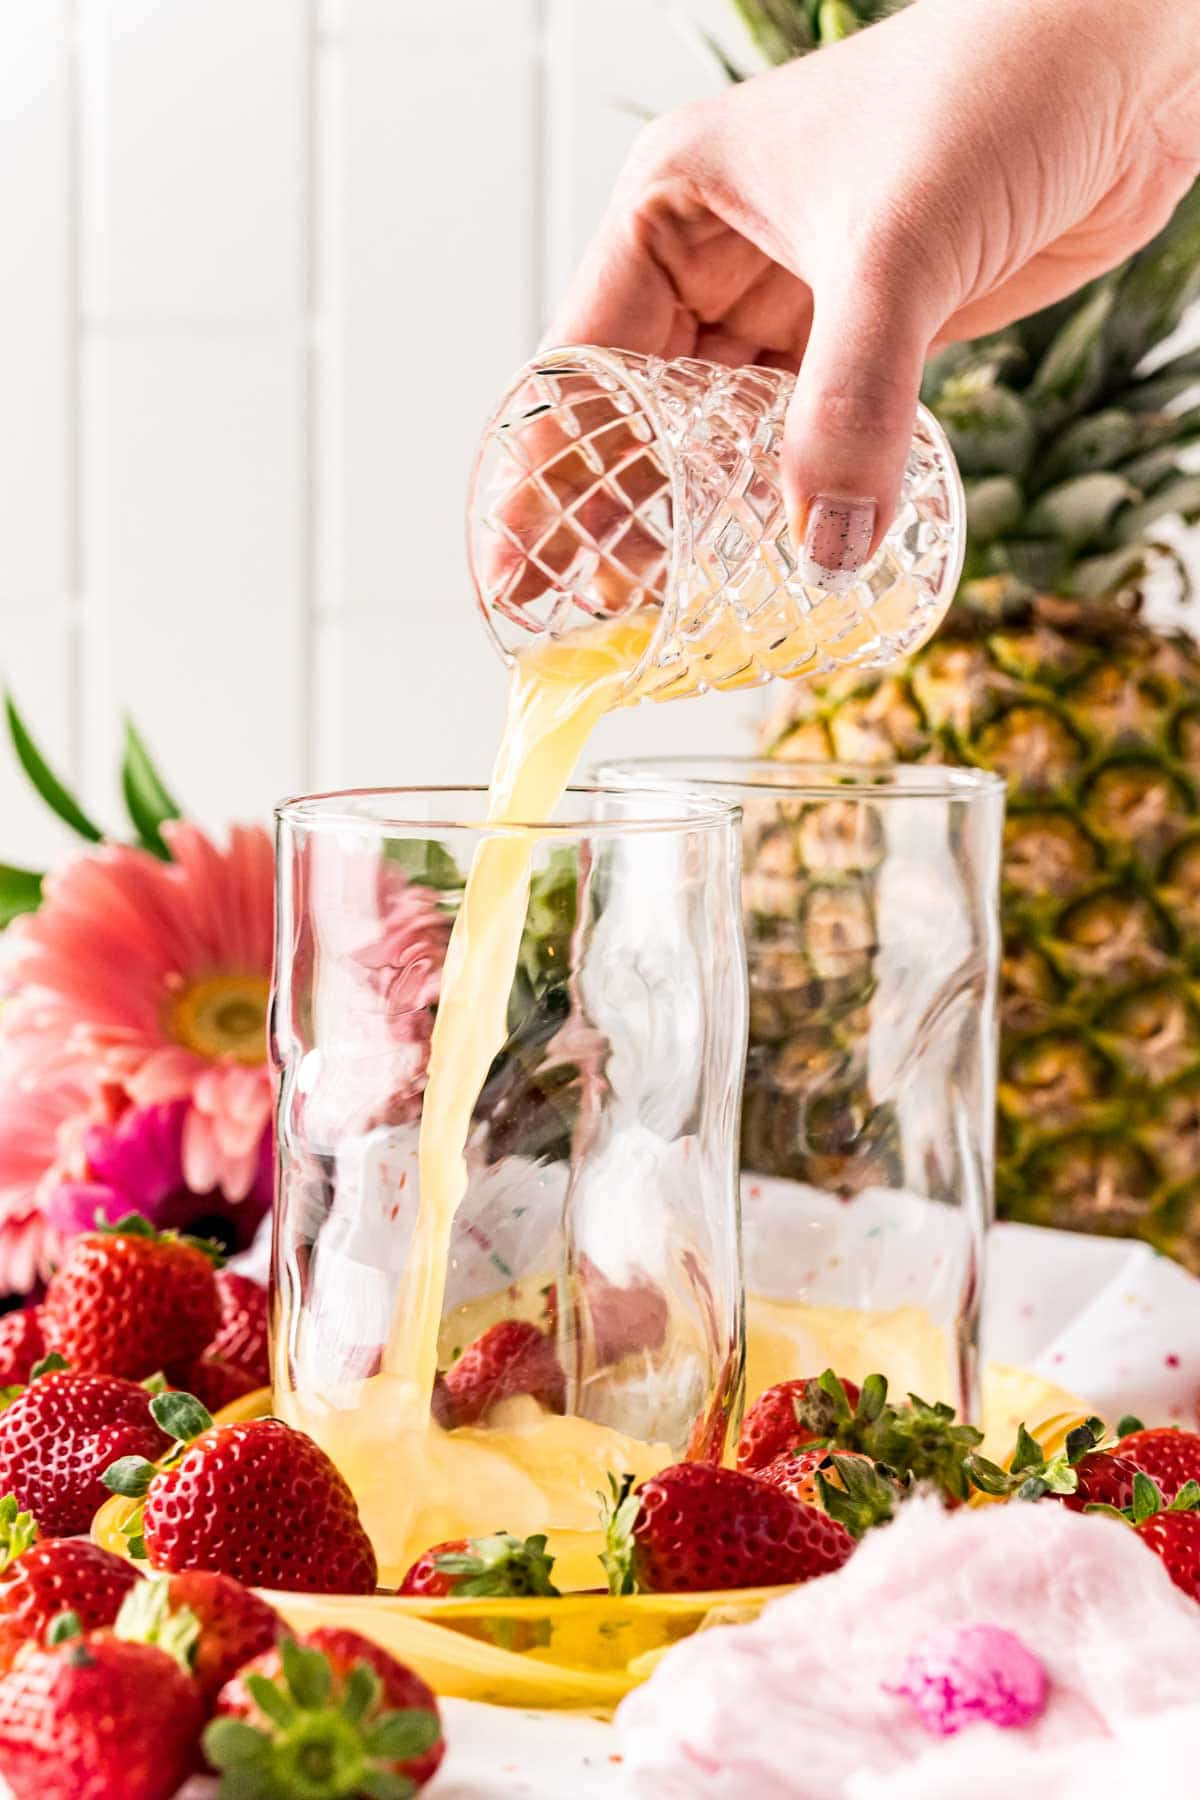 Woman's hand pouring pineapple juice into a glass